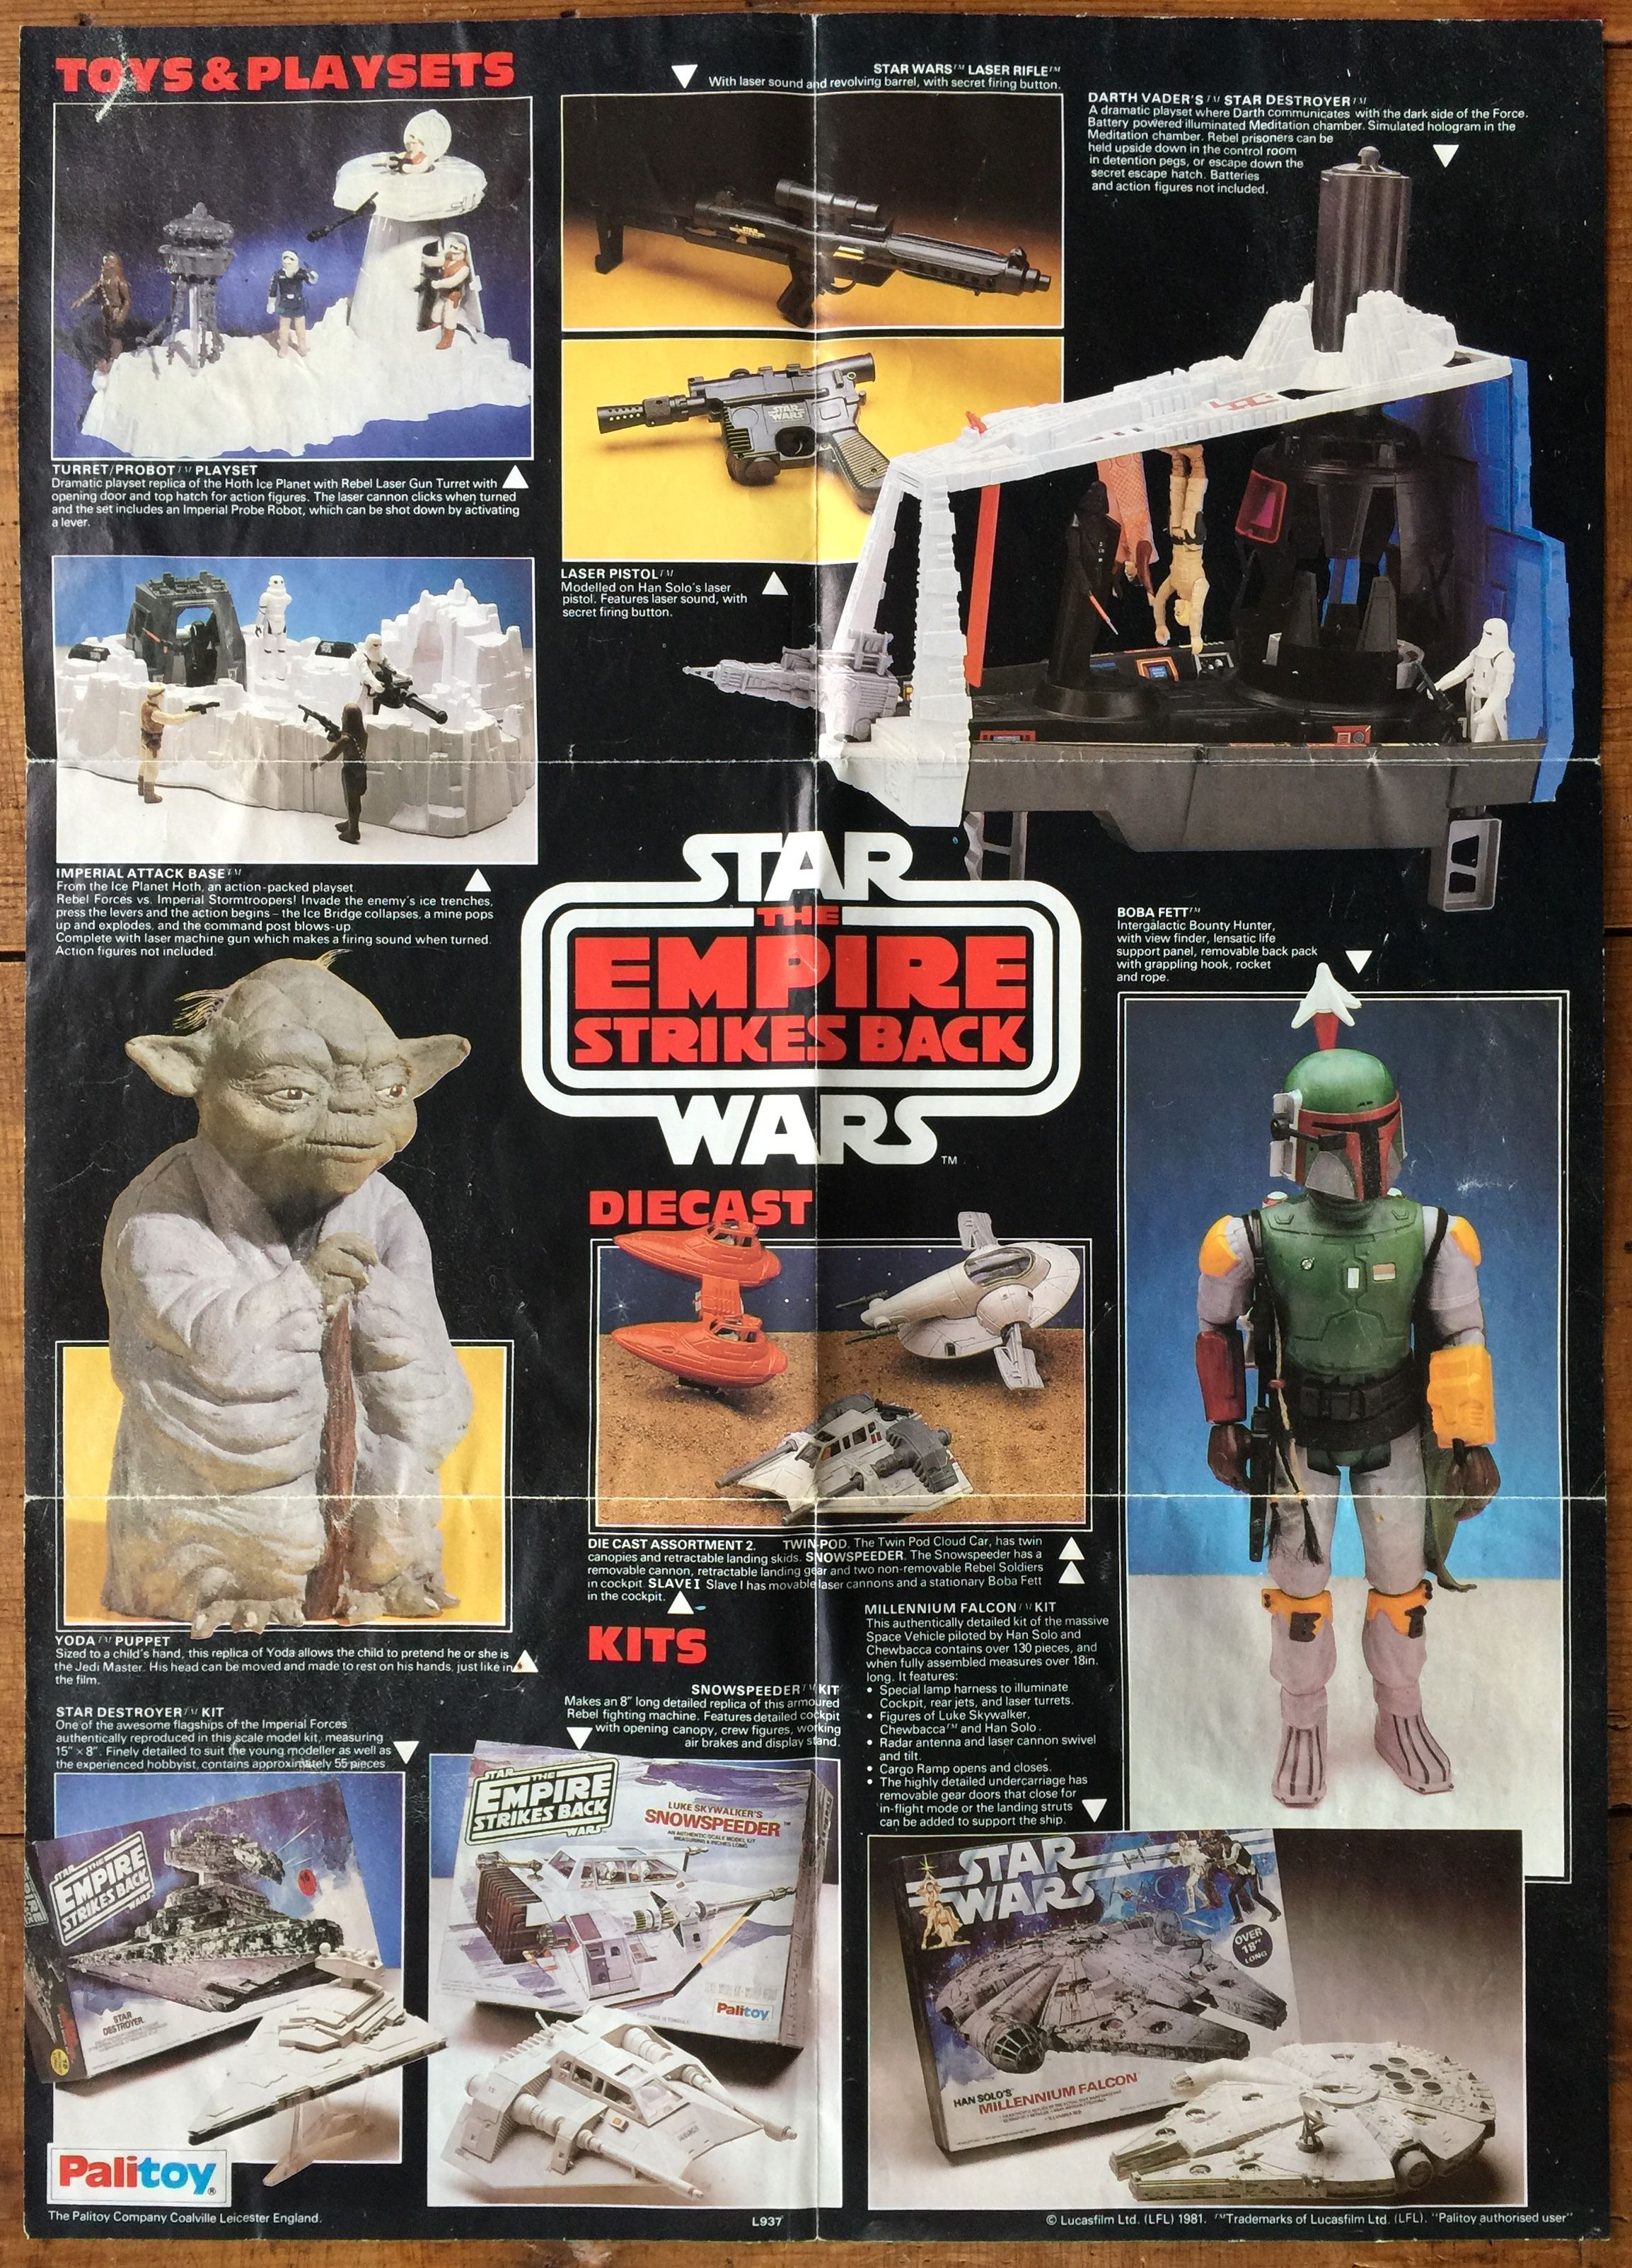 Vintage Palitoy Star Wars Empire Strikes Back Toy Poster Kenshocollection Palitoy Starwars Star Wars Memorabilia Star Wars Toys Star Wars Collection